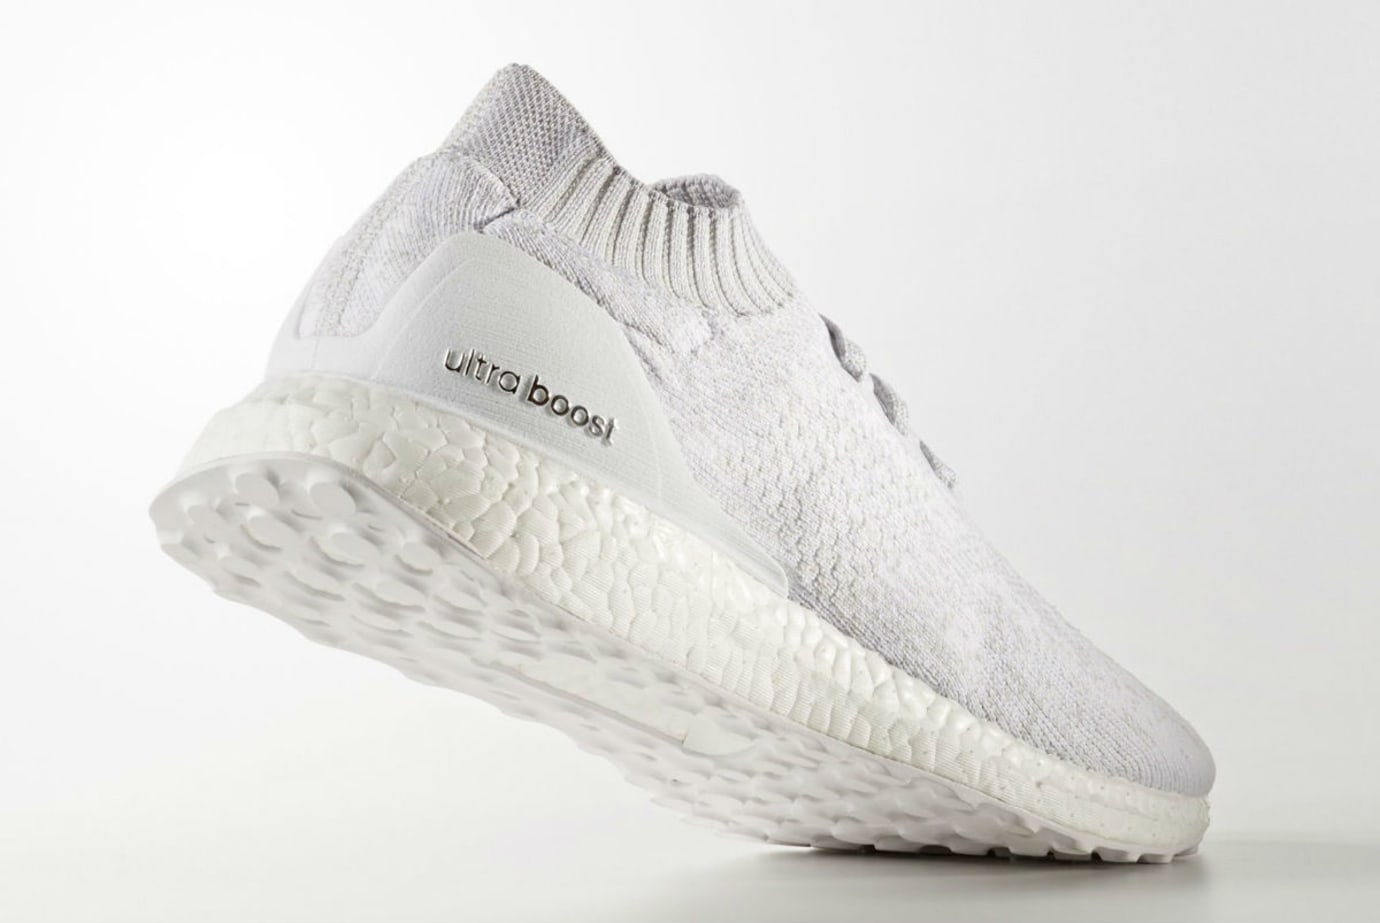 Adidas Ultra Boost Uncaged 2.0 White Release Date Lateral